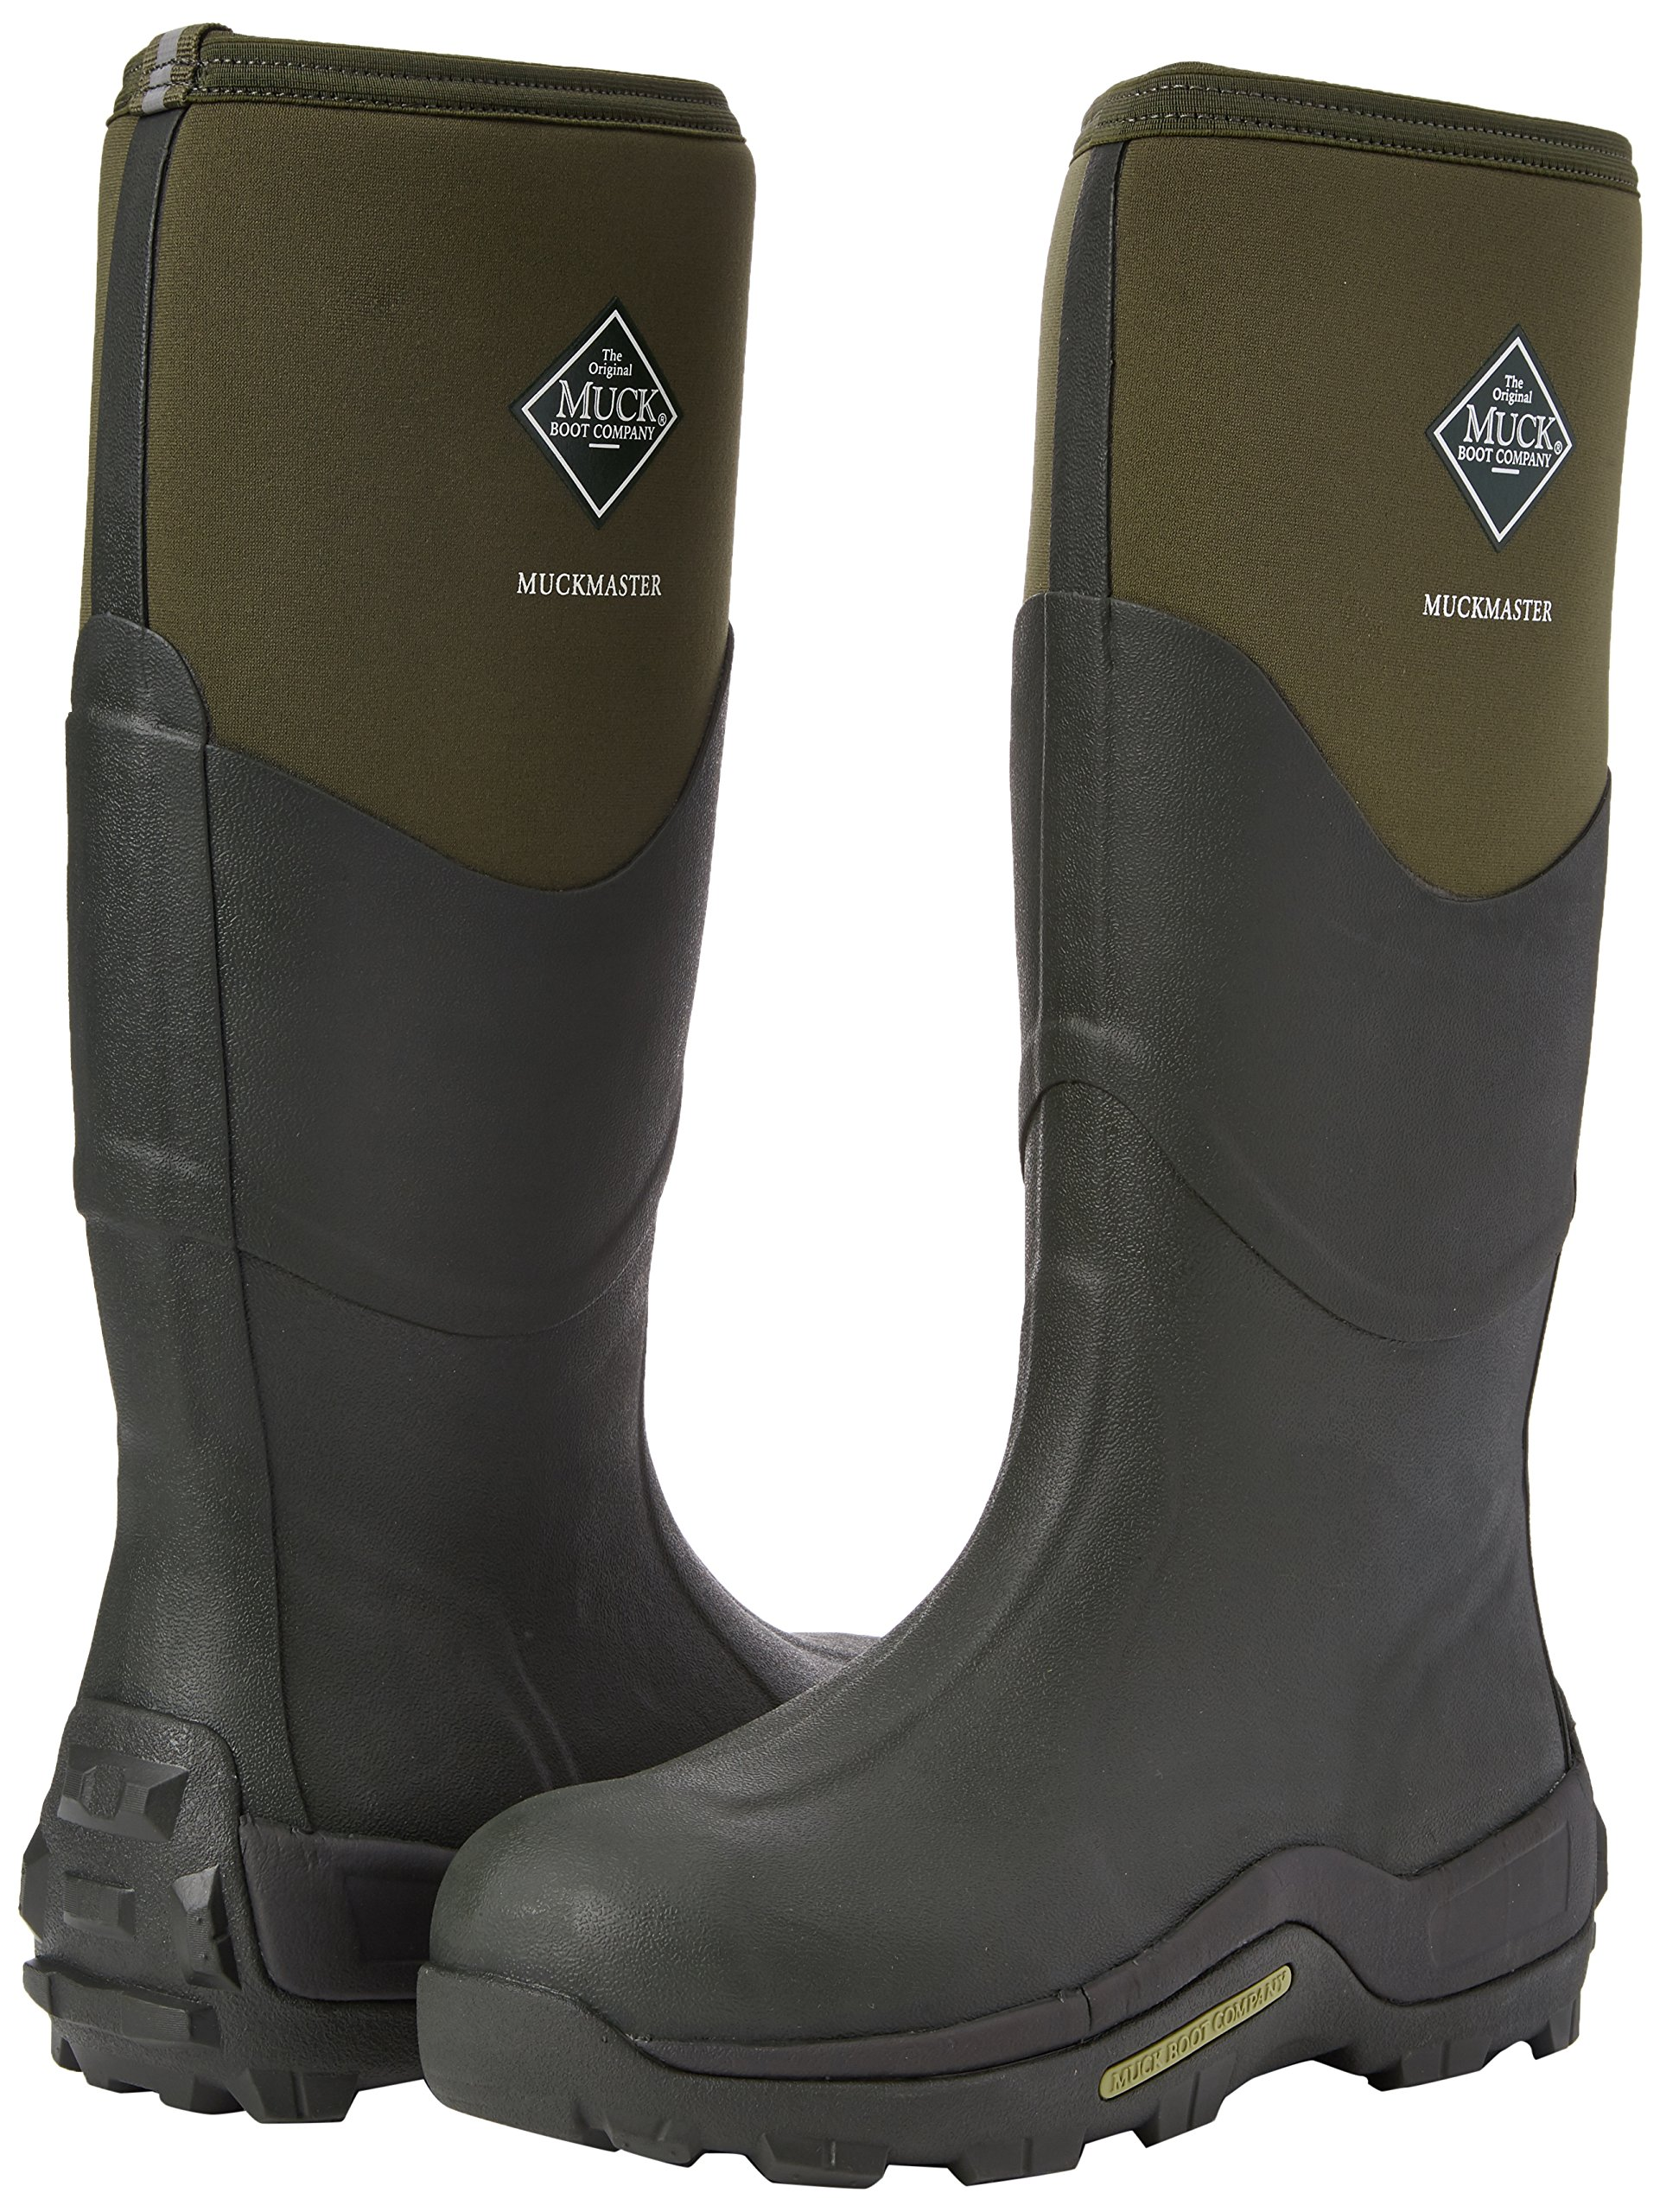 Muck Mens Muckmaster Green Textile Boots 9 US by Muck Boot (Image #5)